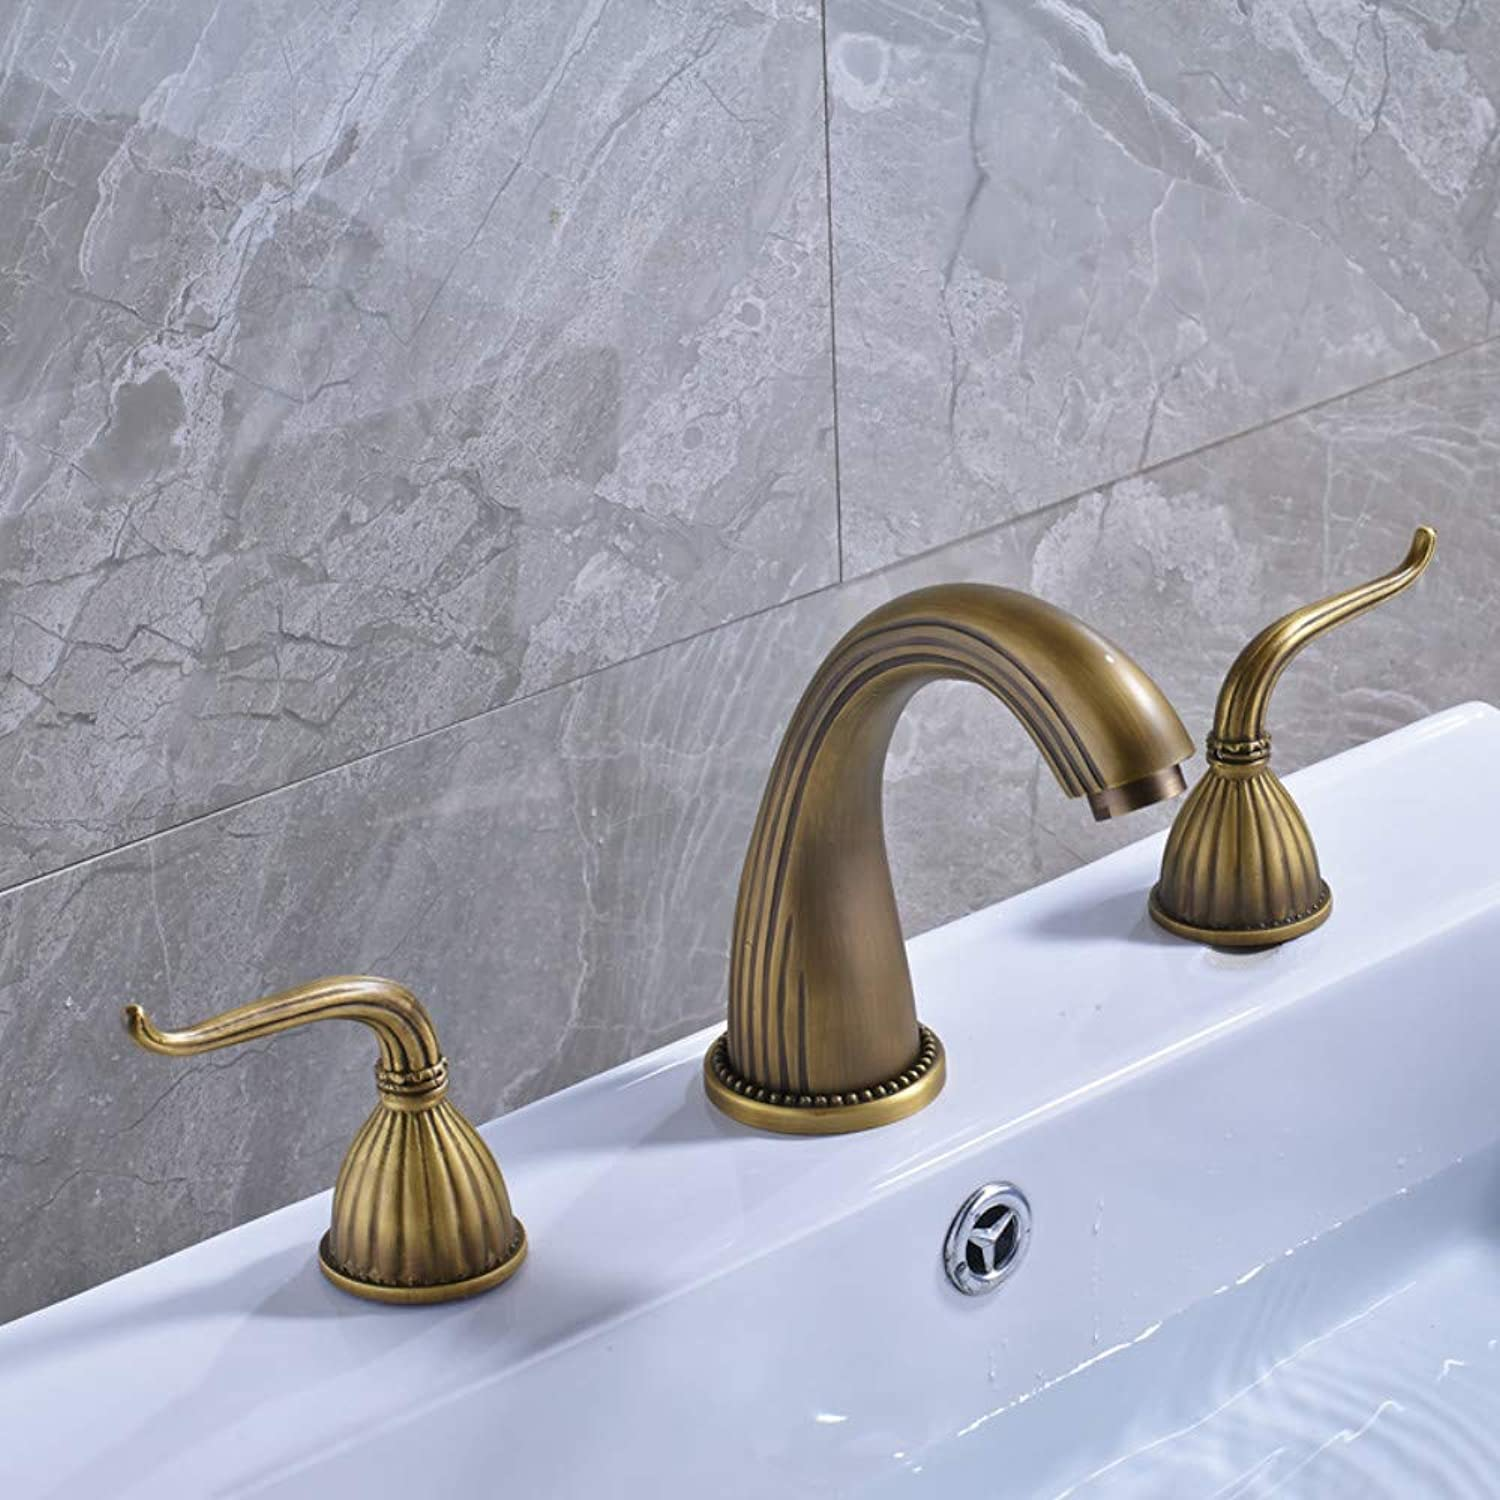 CZOOR Antique Brass Widespread Dual Handle Bathroom Washing Basin Mixer Taps Deck Mounted 3 Holes Lavatory Sink Faucet